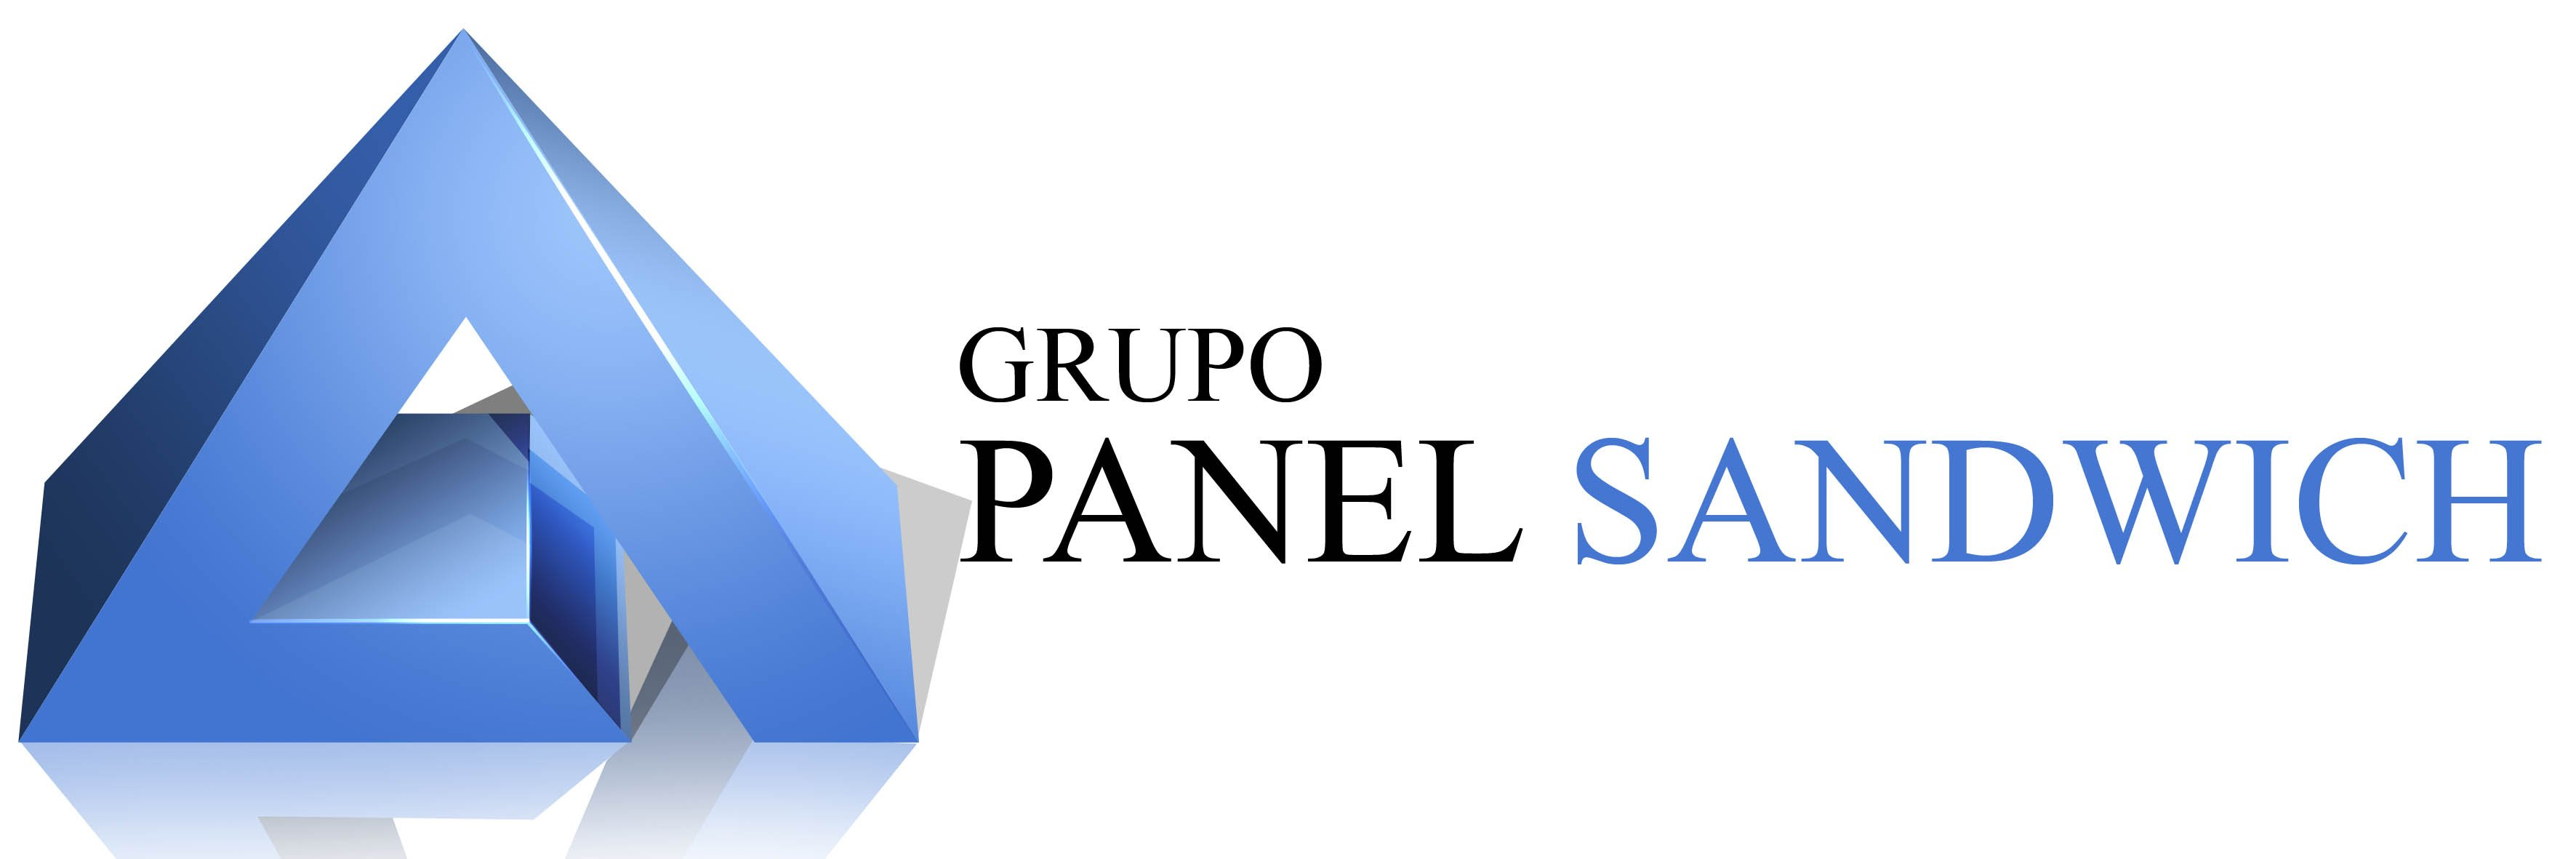 Panel Sandwich Group en Chile